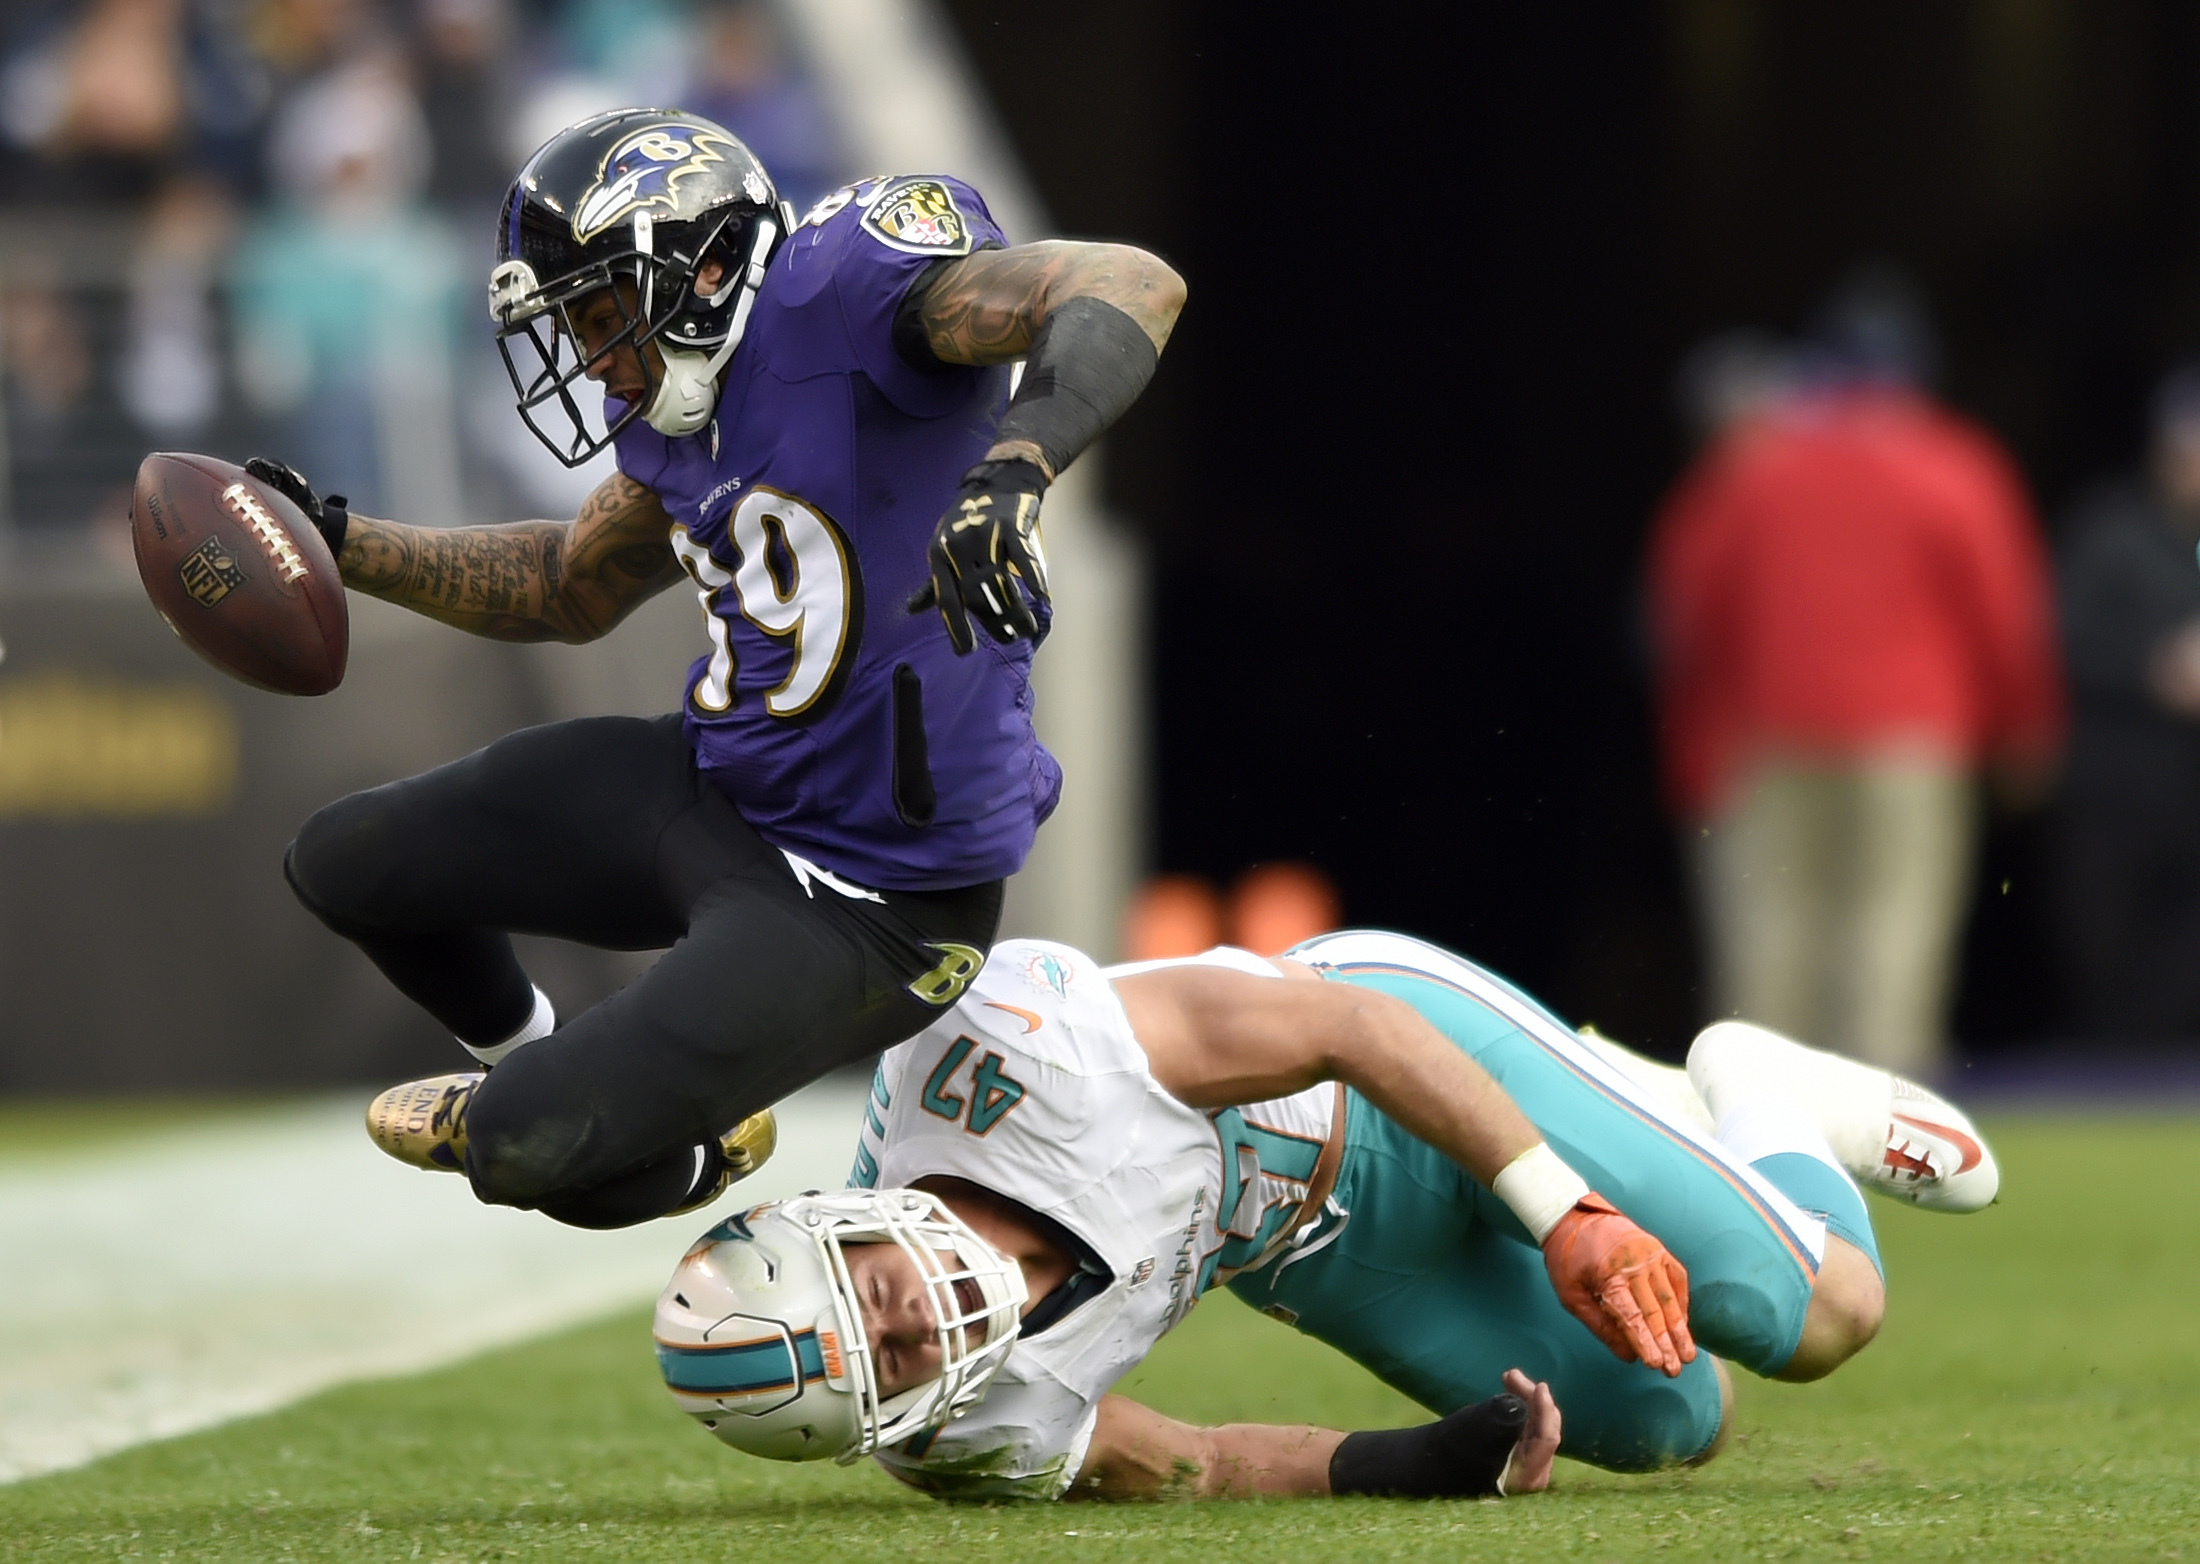 Baltimore Ravens wide receiver Steve Smith, top, falls over Miami Dolphins middle linebacker Kiko Alonso as he rushes the ball in the second half of an NFL football game, Sunday, Dec. 4, 2016, in Baltimore. (AP Photo/Gail Burton)